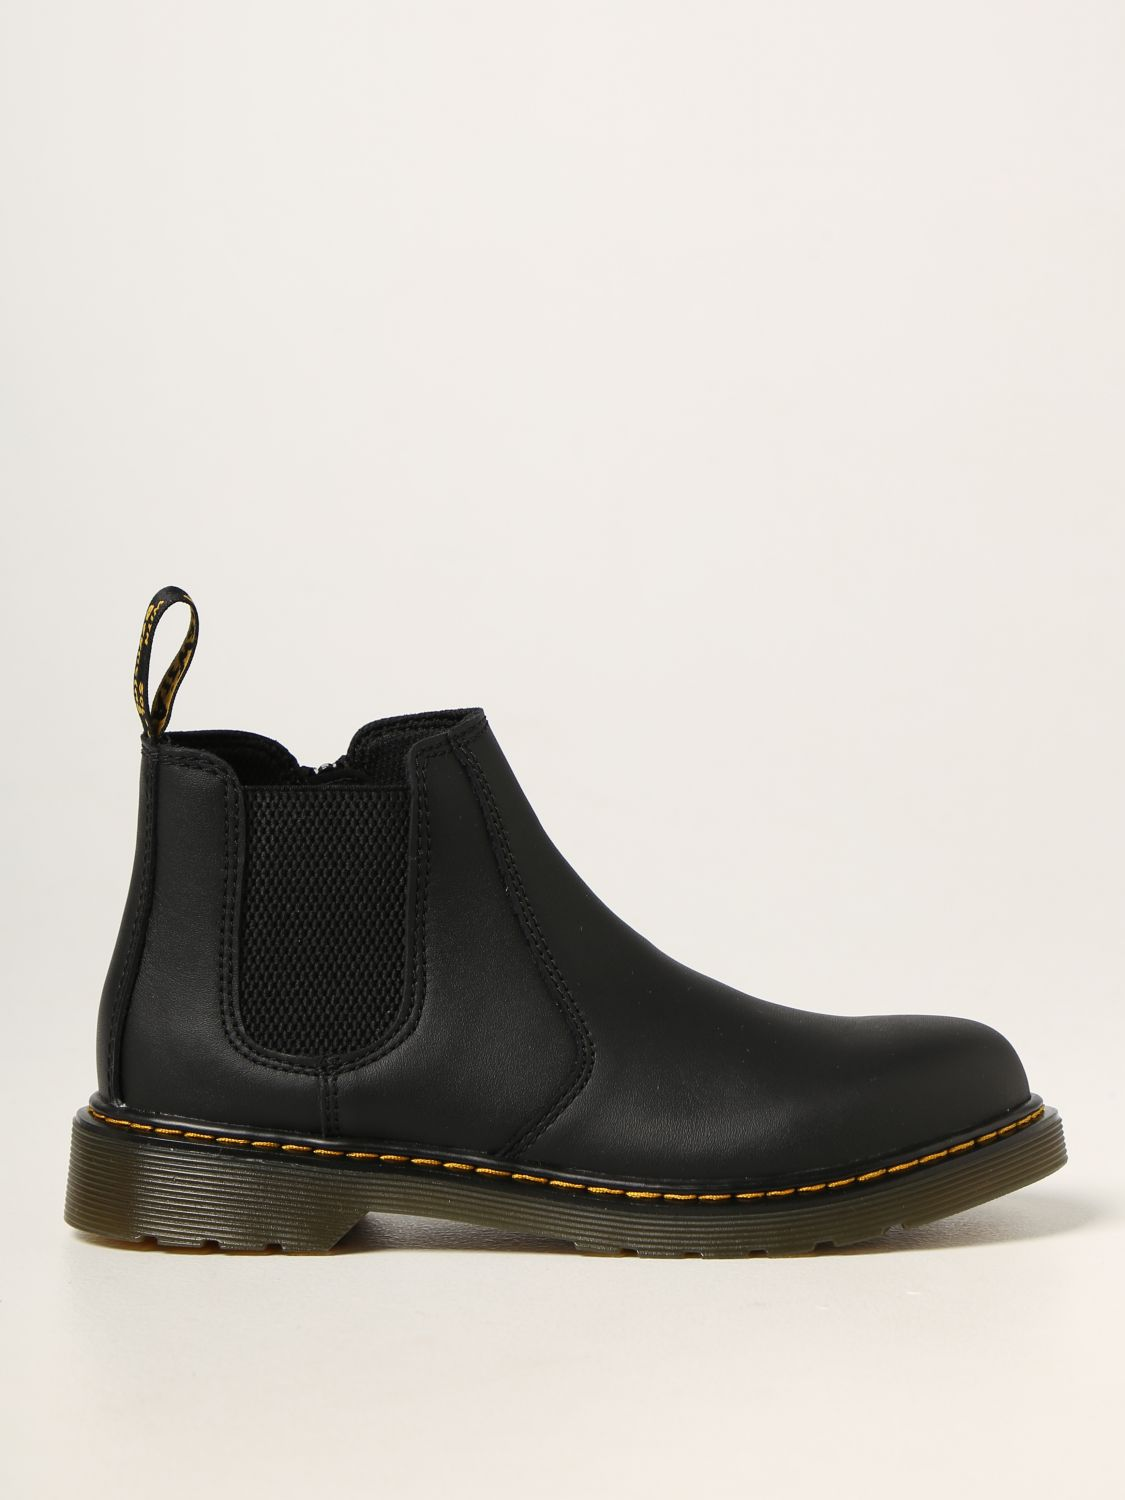 Shoes Dr. Martens: Dr. Martens Banzai ankle boots in brushed leather black 1